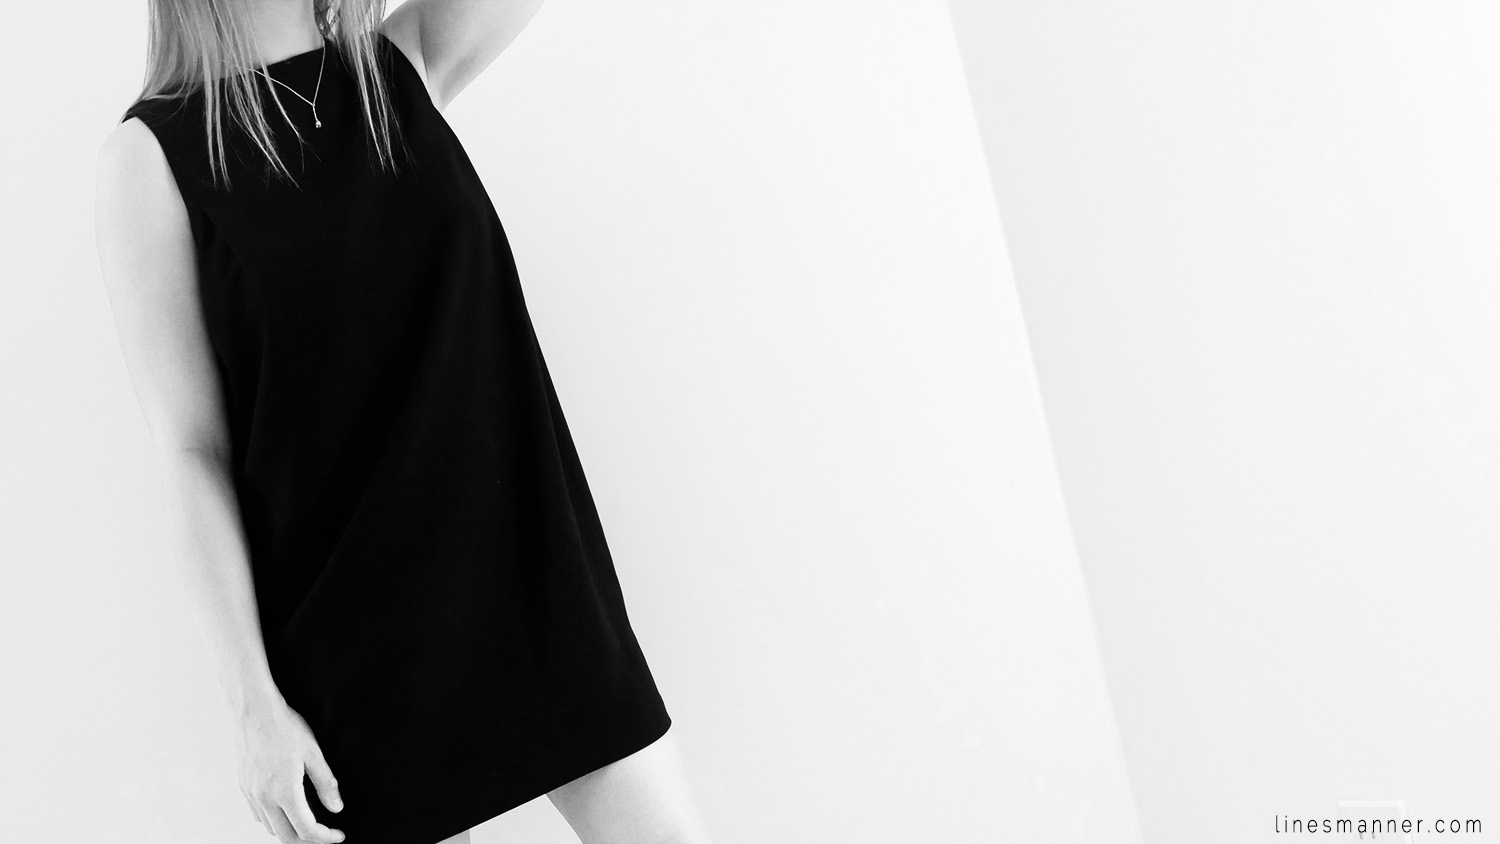 Lines-Manner-Remind-2015-Minimal-Essential-Outfit-Inspiration-Blog-Timeless-Year-Seasons-Details-Travel-Fashion-Versatile-Clean-Sleek-Quality-60